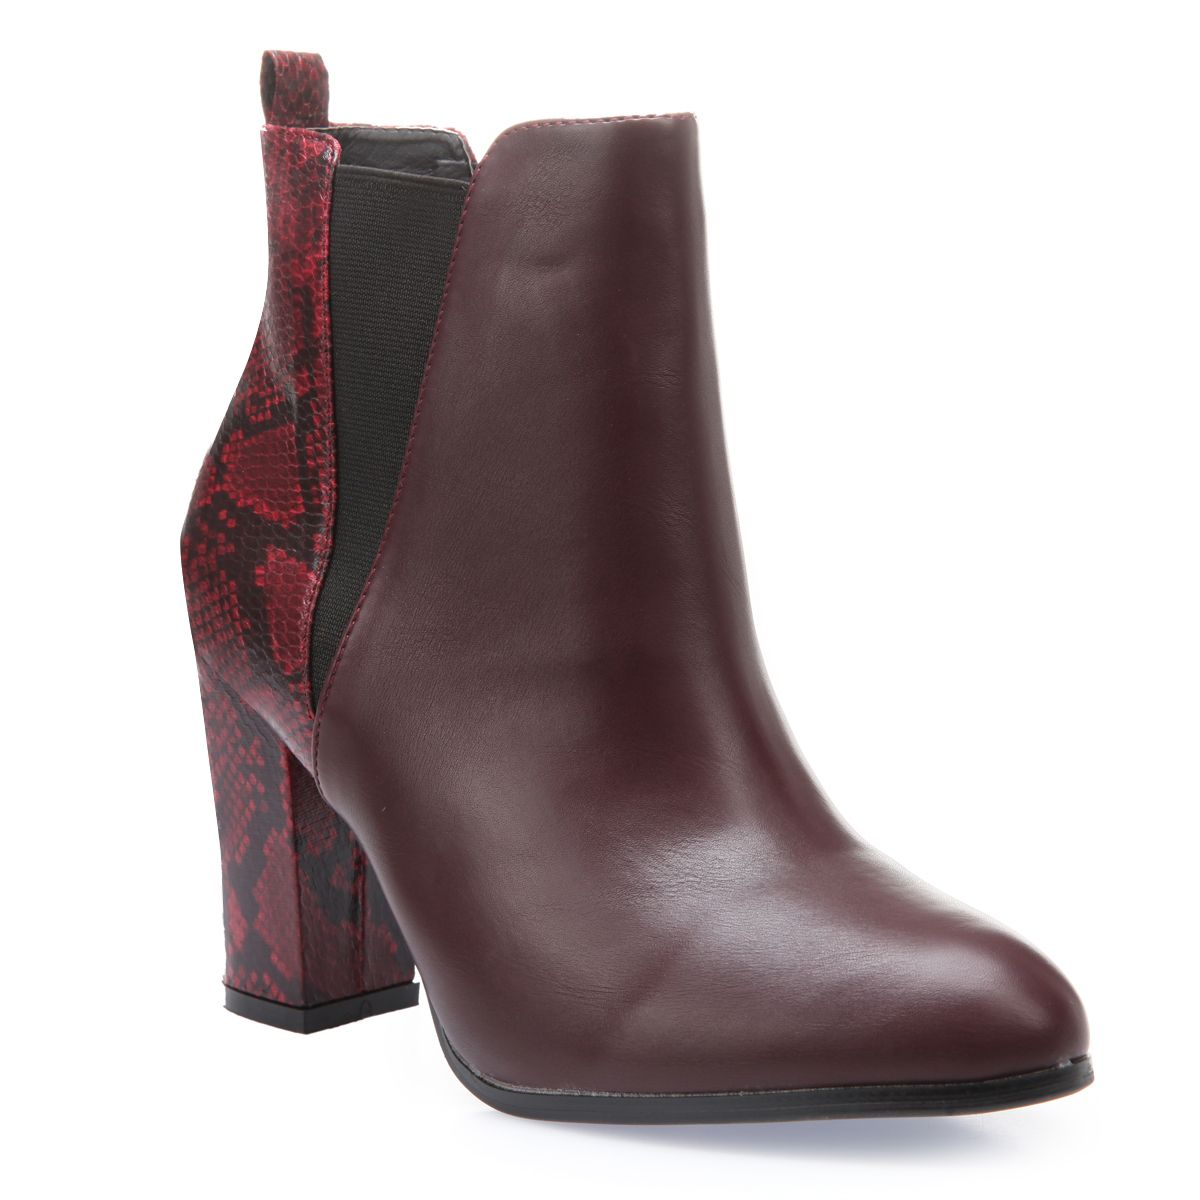 Bottines chelsea bordeaux imprimé python